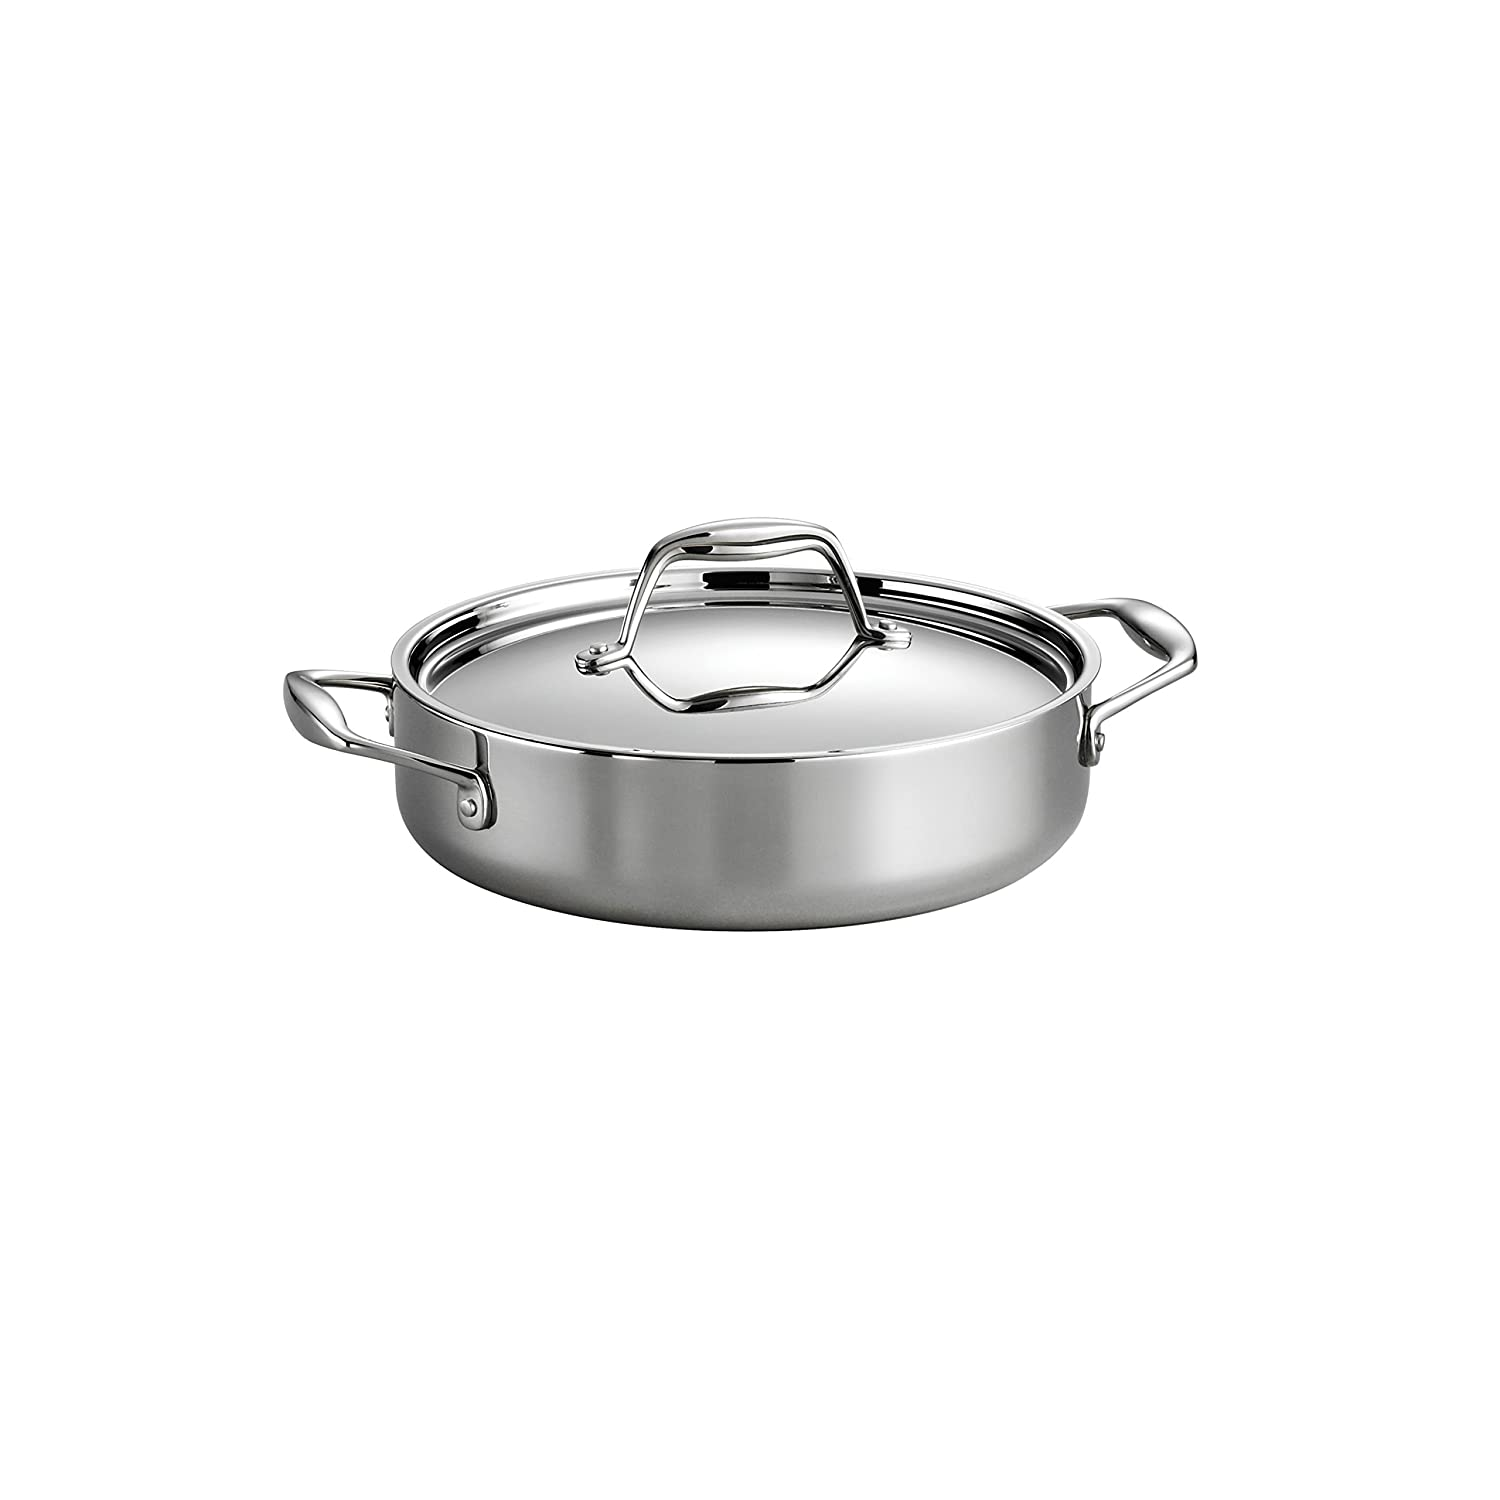 Tramontina 80116/021DS Gourmet Stainless Steel Induction-Ready Tri-Ply Clad Covered Sauce Pan, 1.5-Quart, NSF-Certified, Made in Brazil